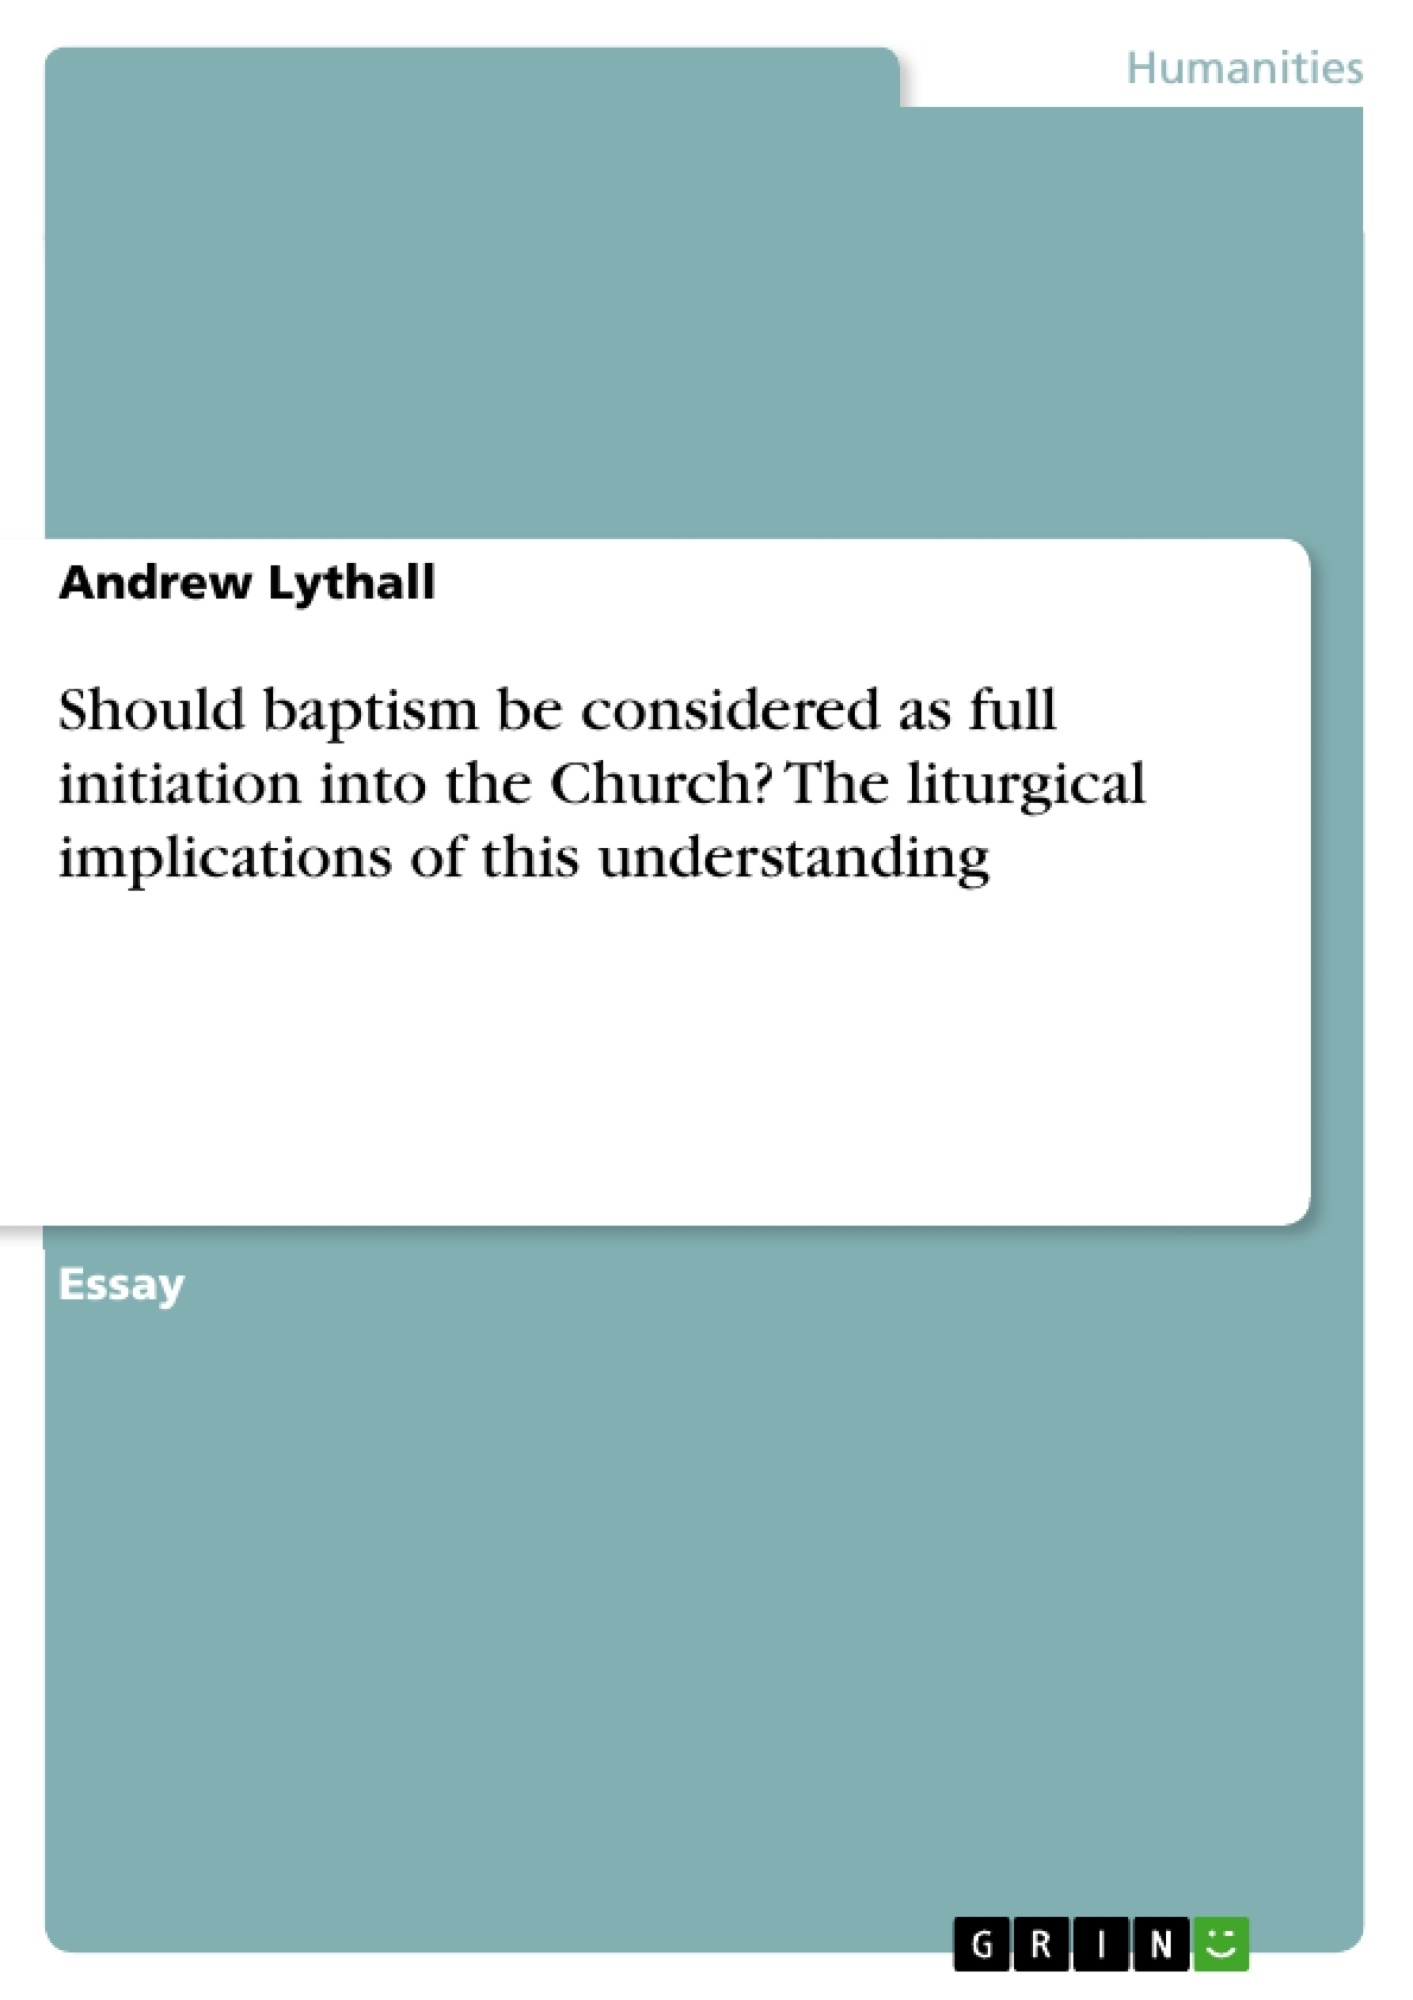 Title: Should baptism be considered as full initiation into the Church? The liturgical implications of this understanding